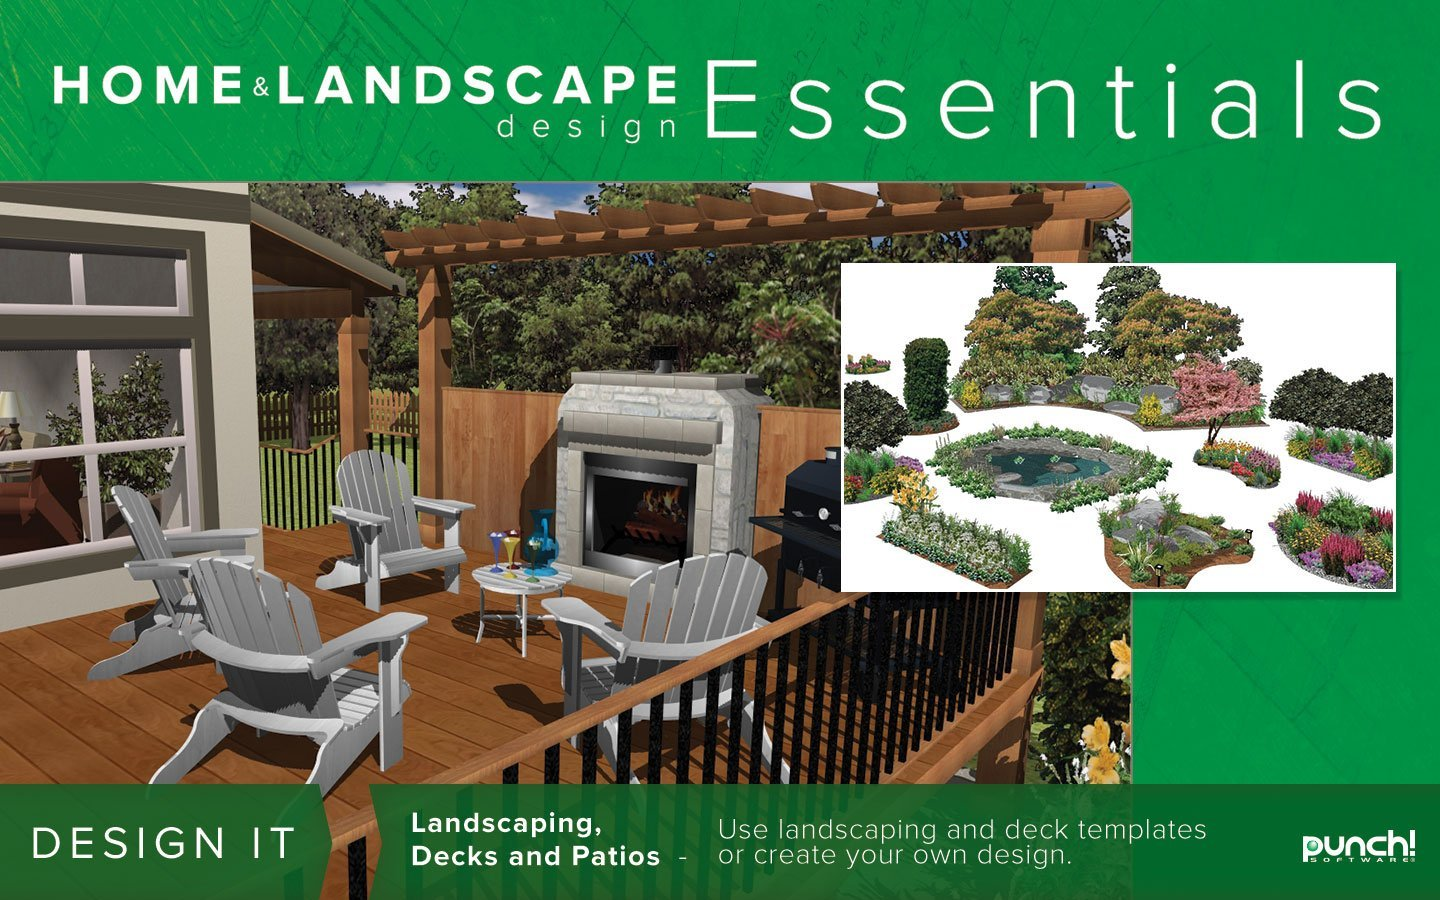 punch home landscape design essentials v18 download